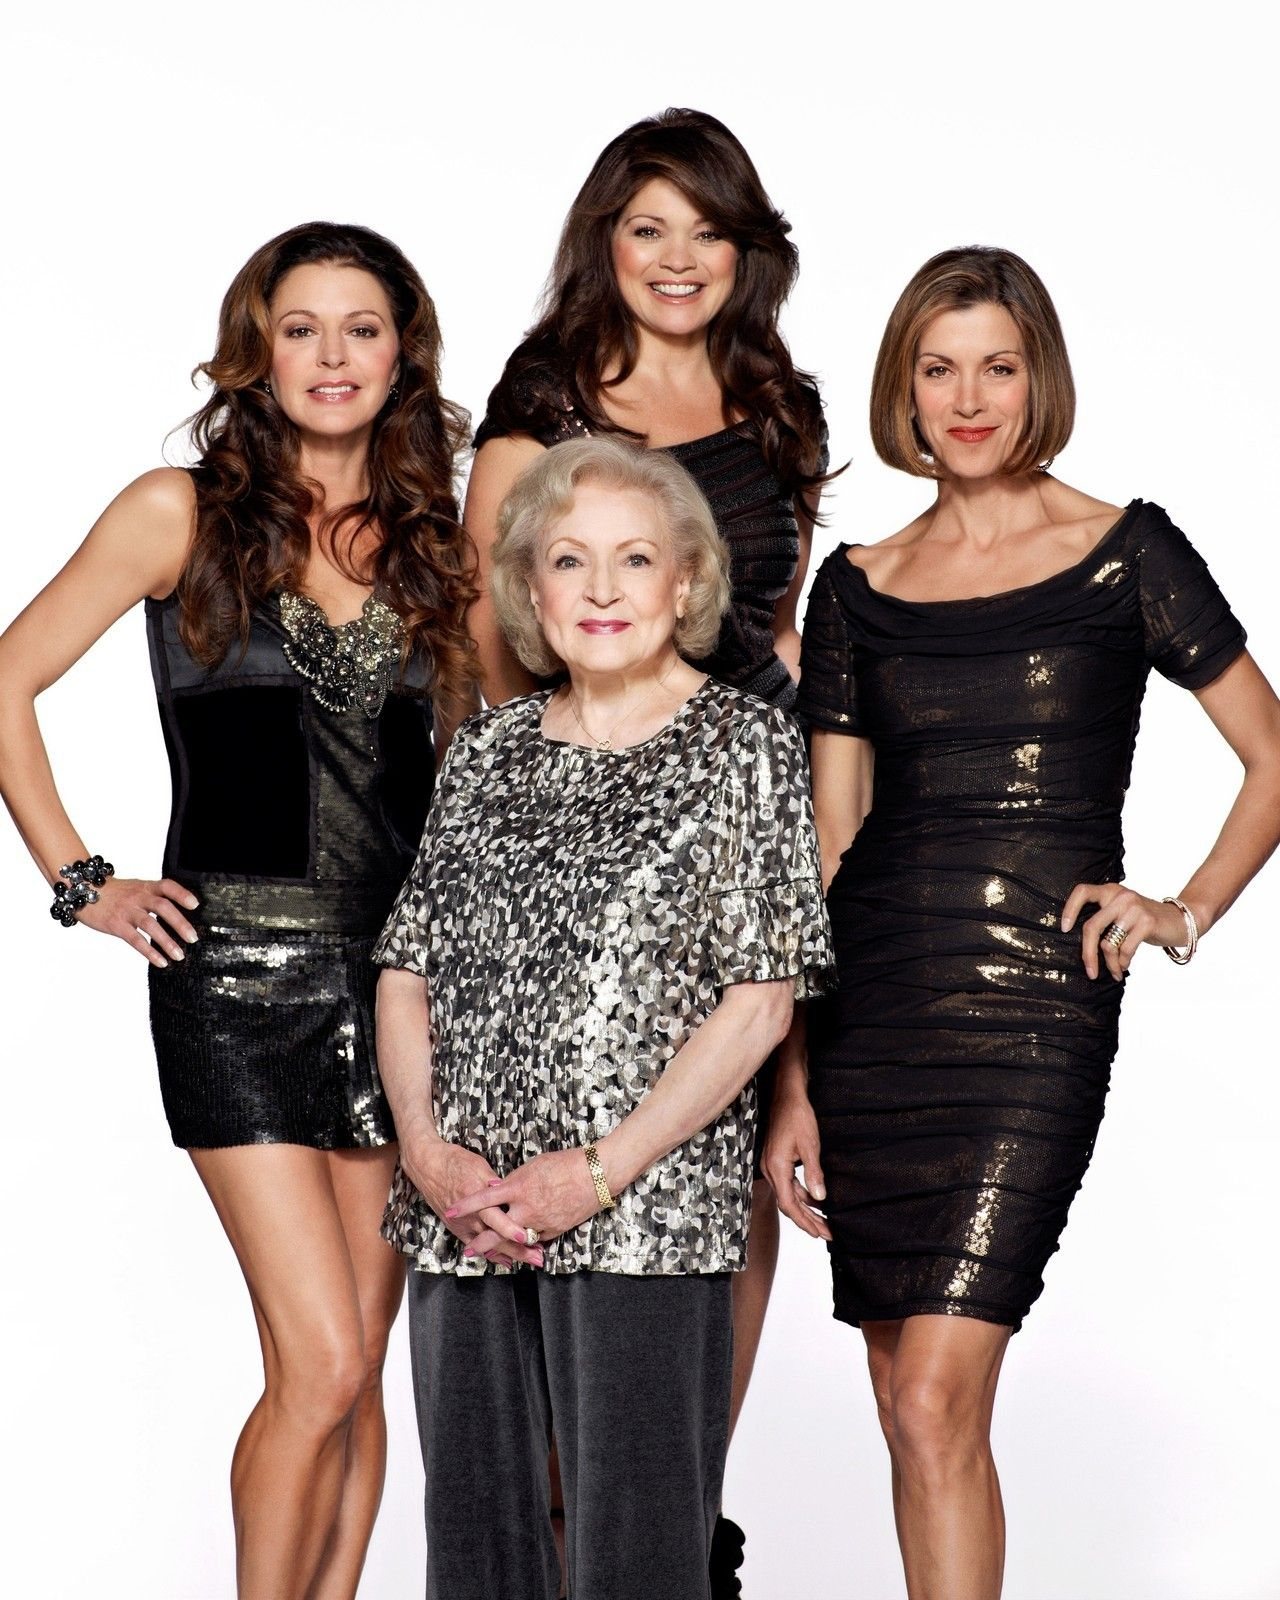 Hot In Cleveland Cast Valerie Bertinelli 8 X 10 Glossy Photo Picture Image 2 Valerie Bertinelli Tv Premiere Betty White